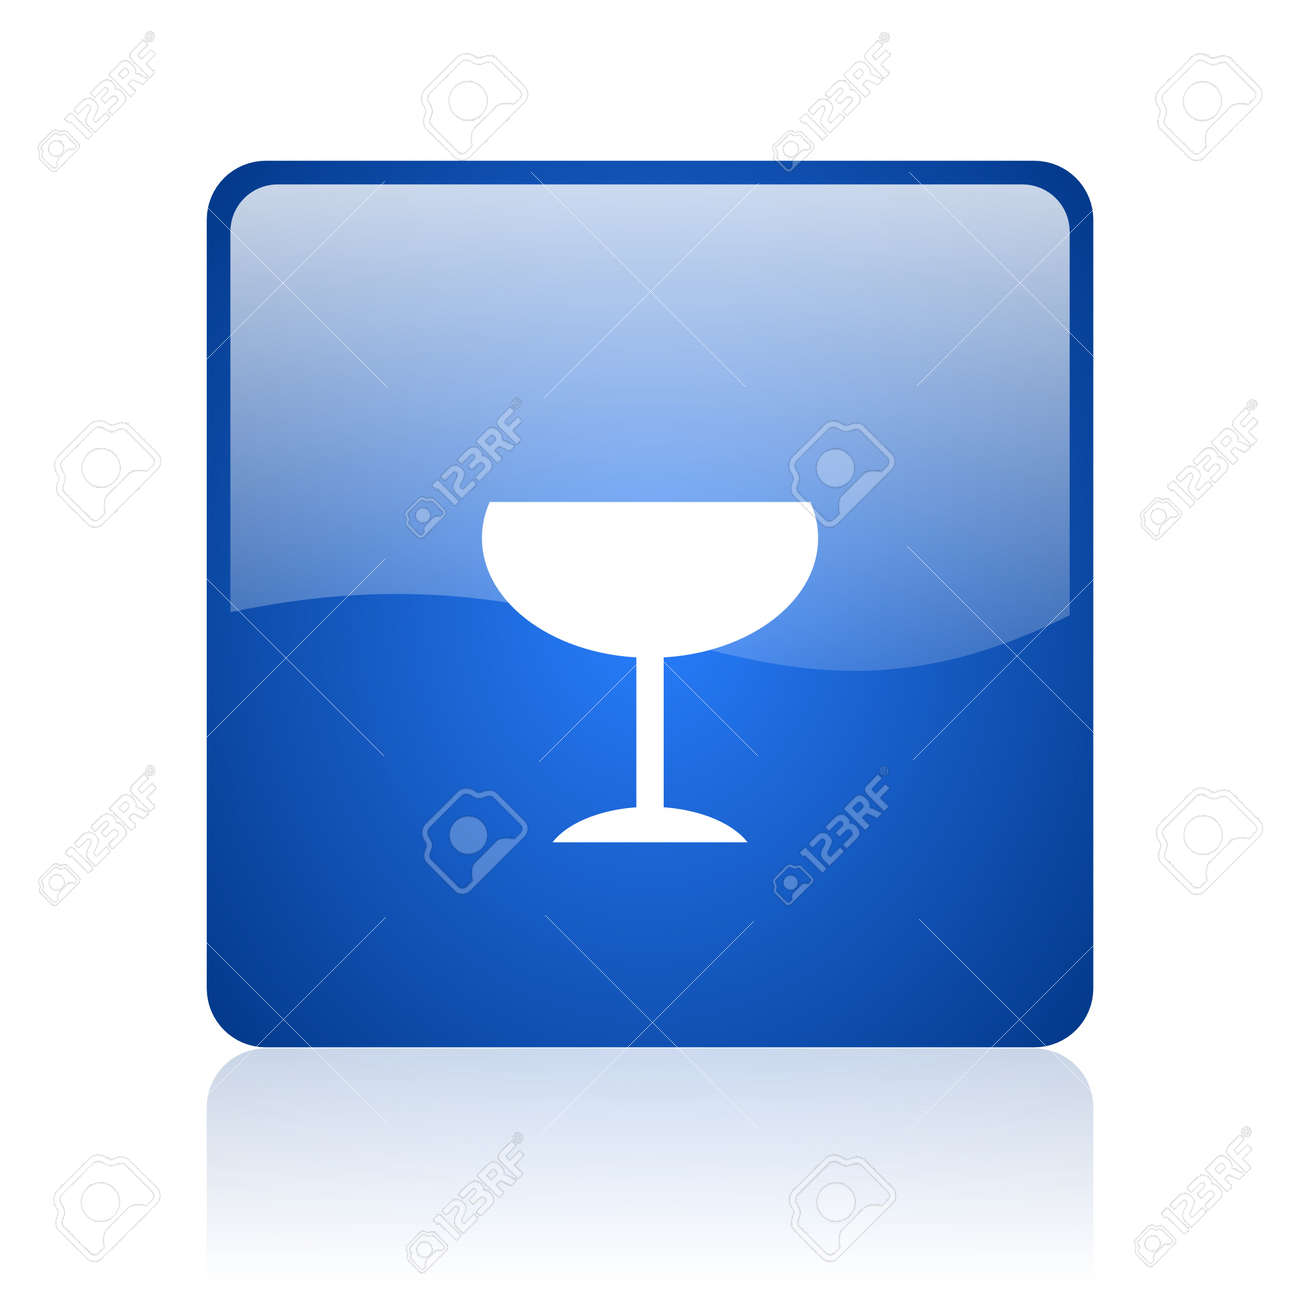 glass blue square glossy web icon on white background Stock Photo - 18037422